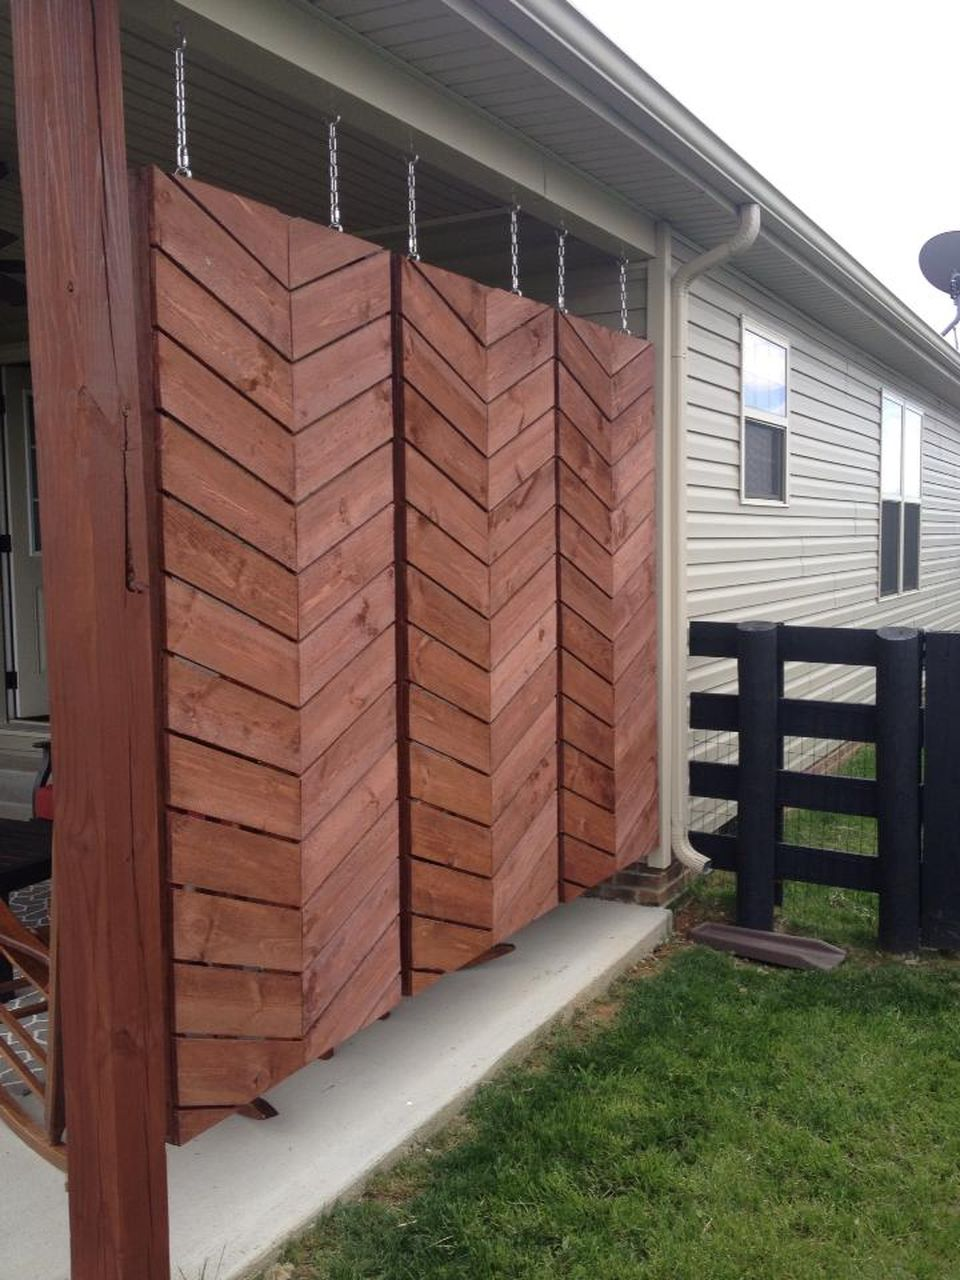 Cool Privacy Fence Wooden Design for Backyard 6 - Hoommy.com